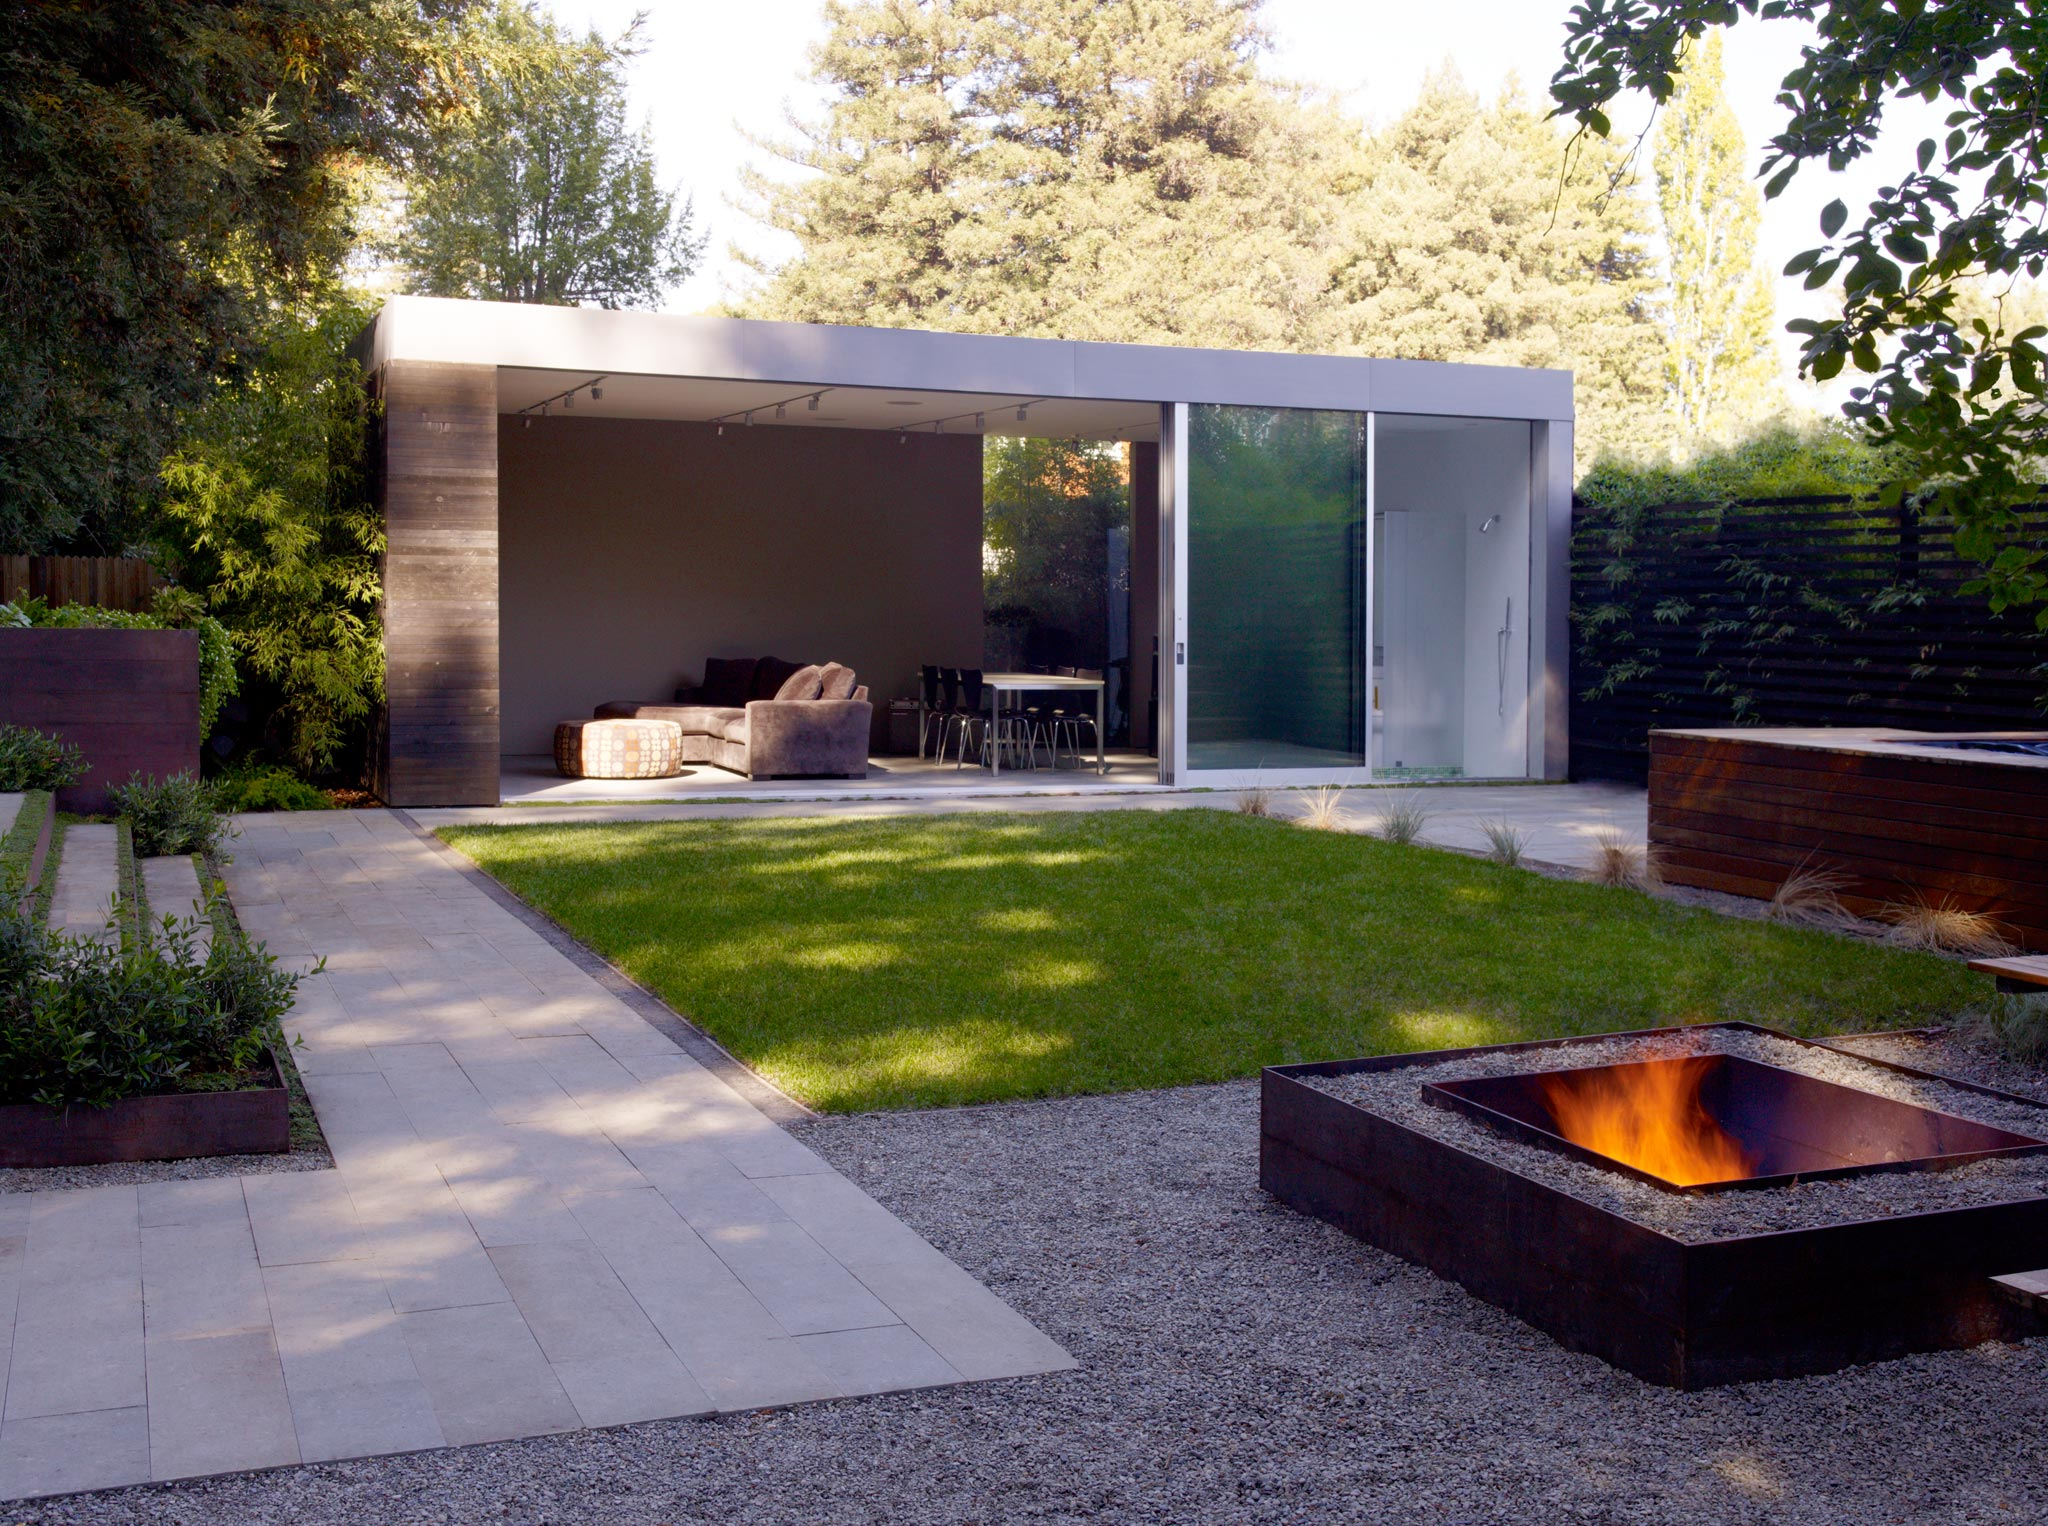 along Larkspur Creek outside view with fireplace